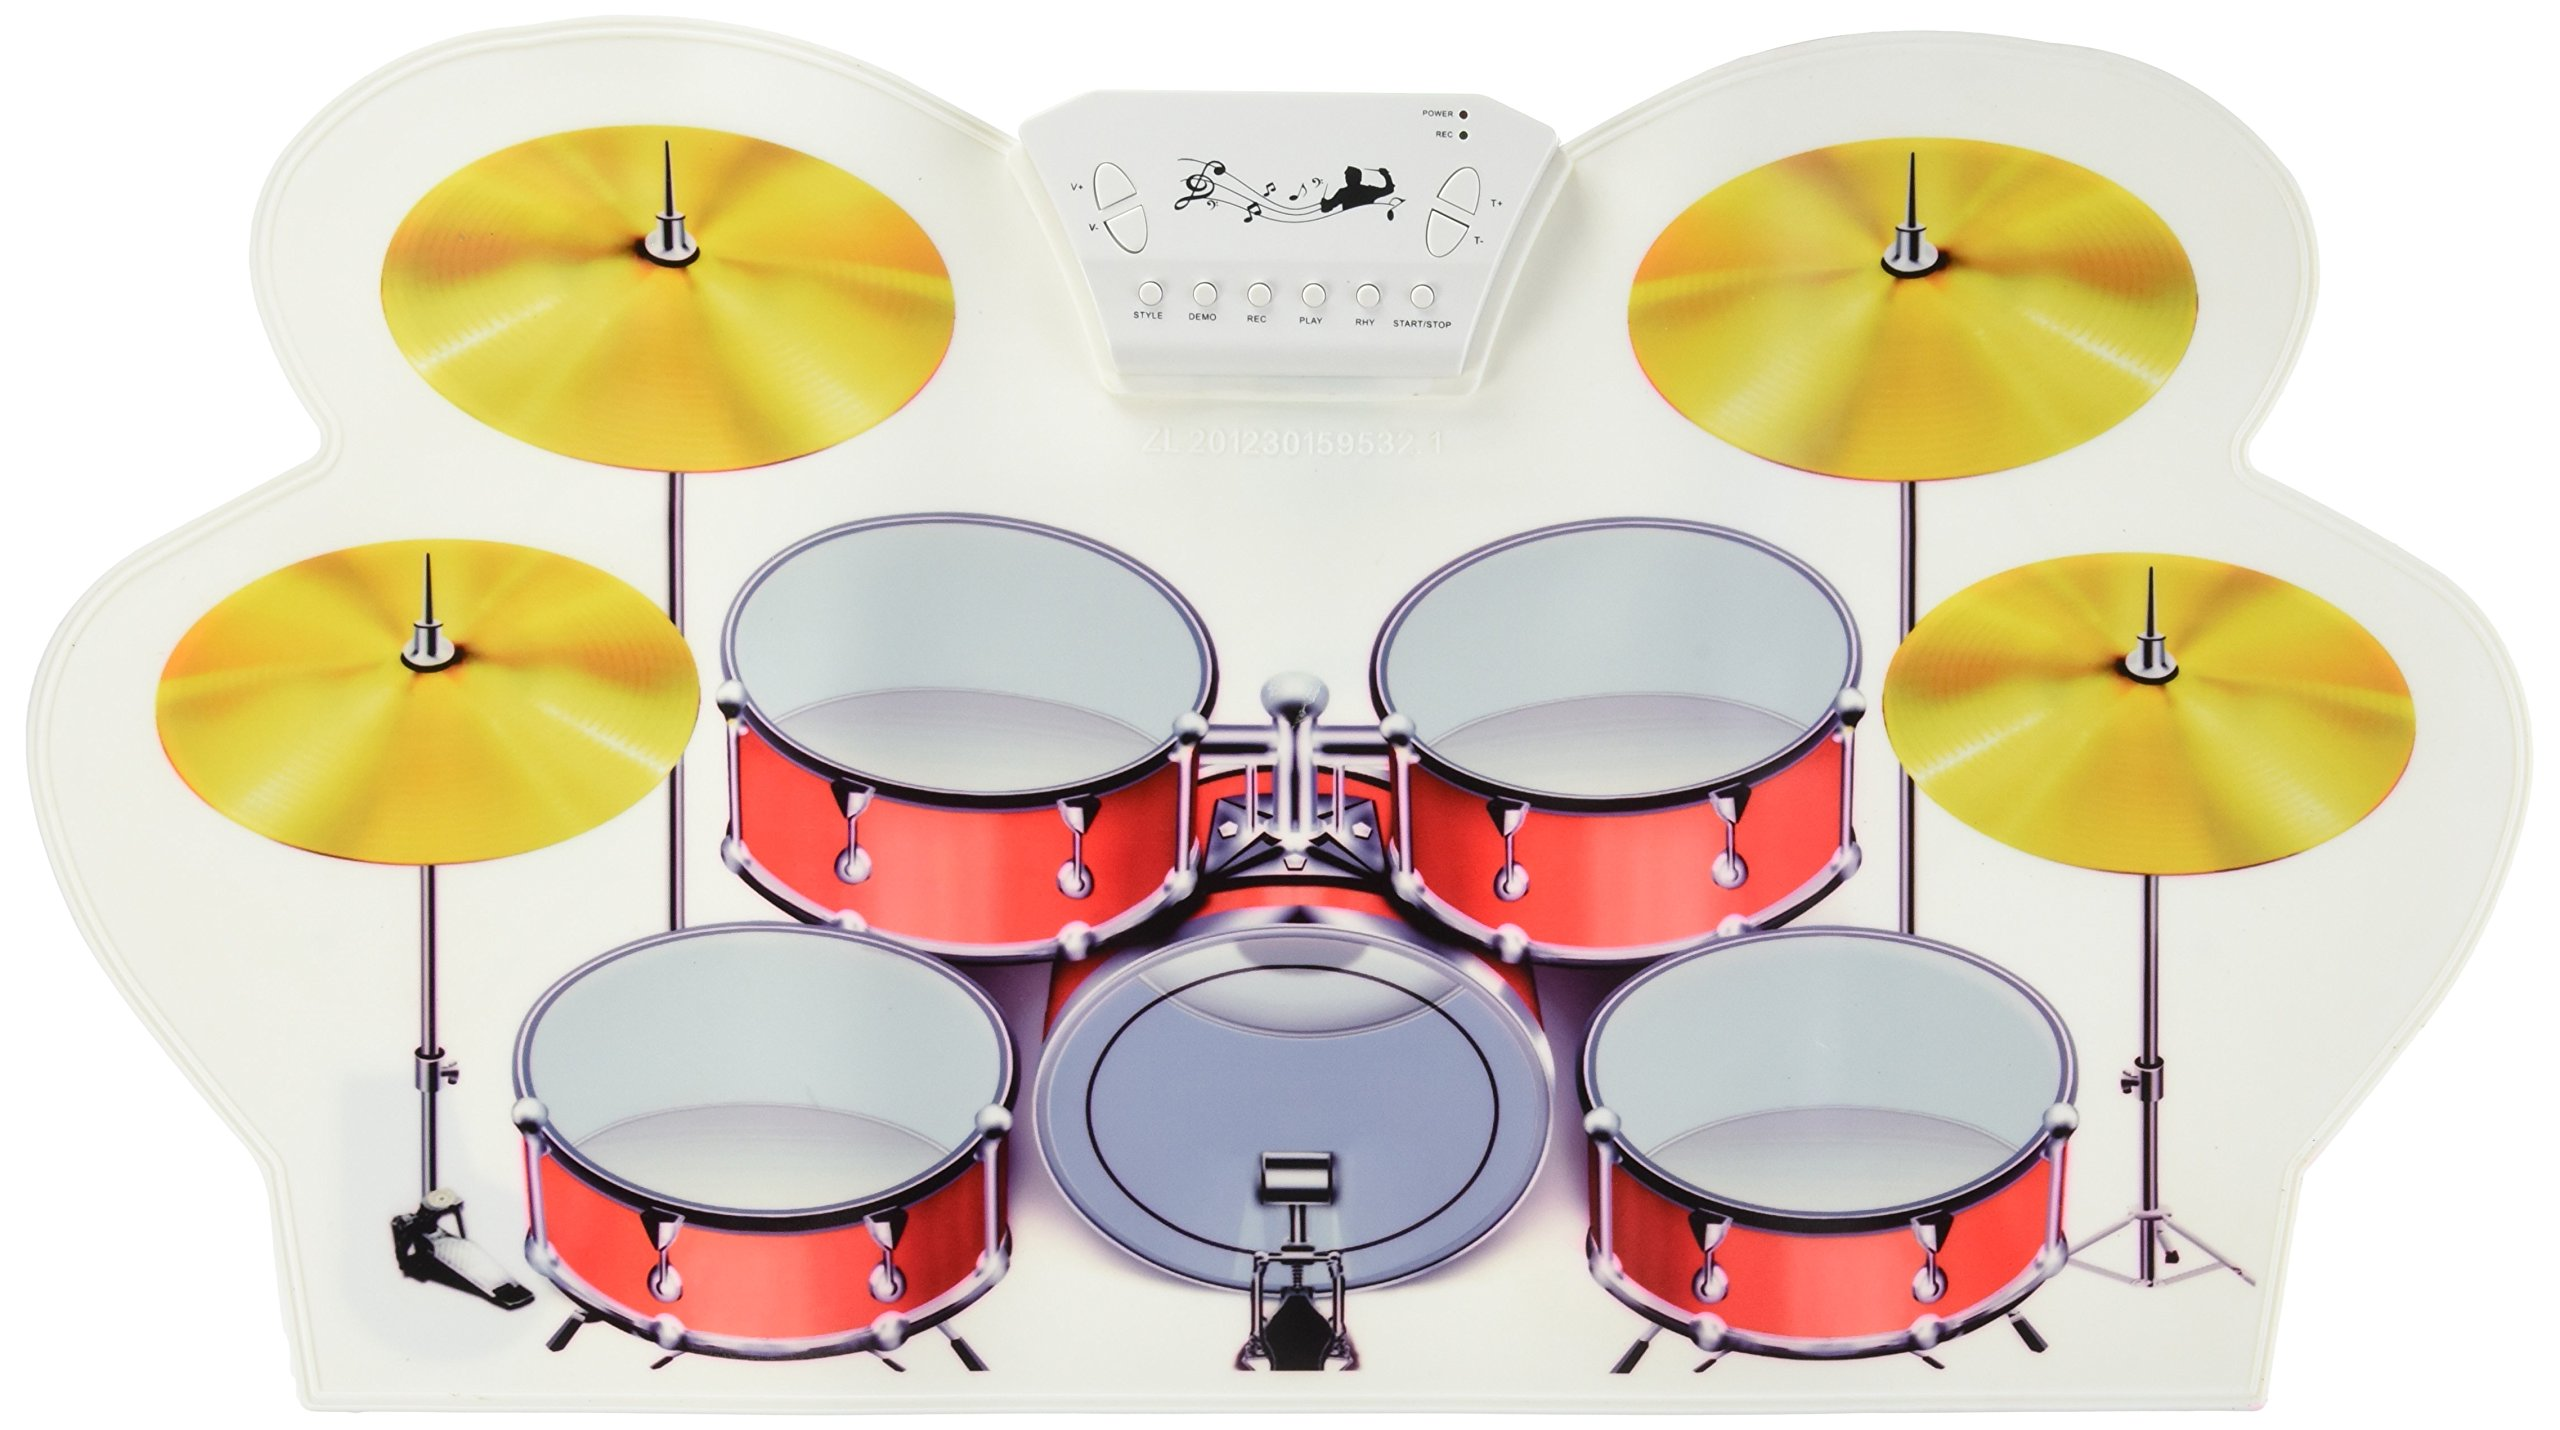 Rockland MD10081 Portable USB MIDI Electronic Drum Kit with software by Rockland